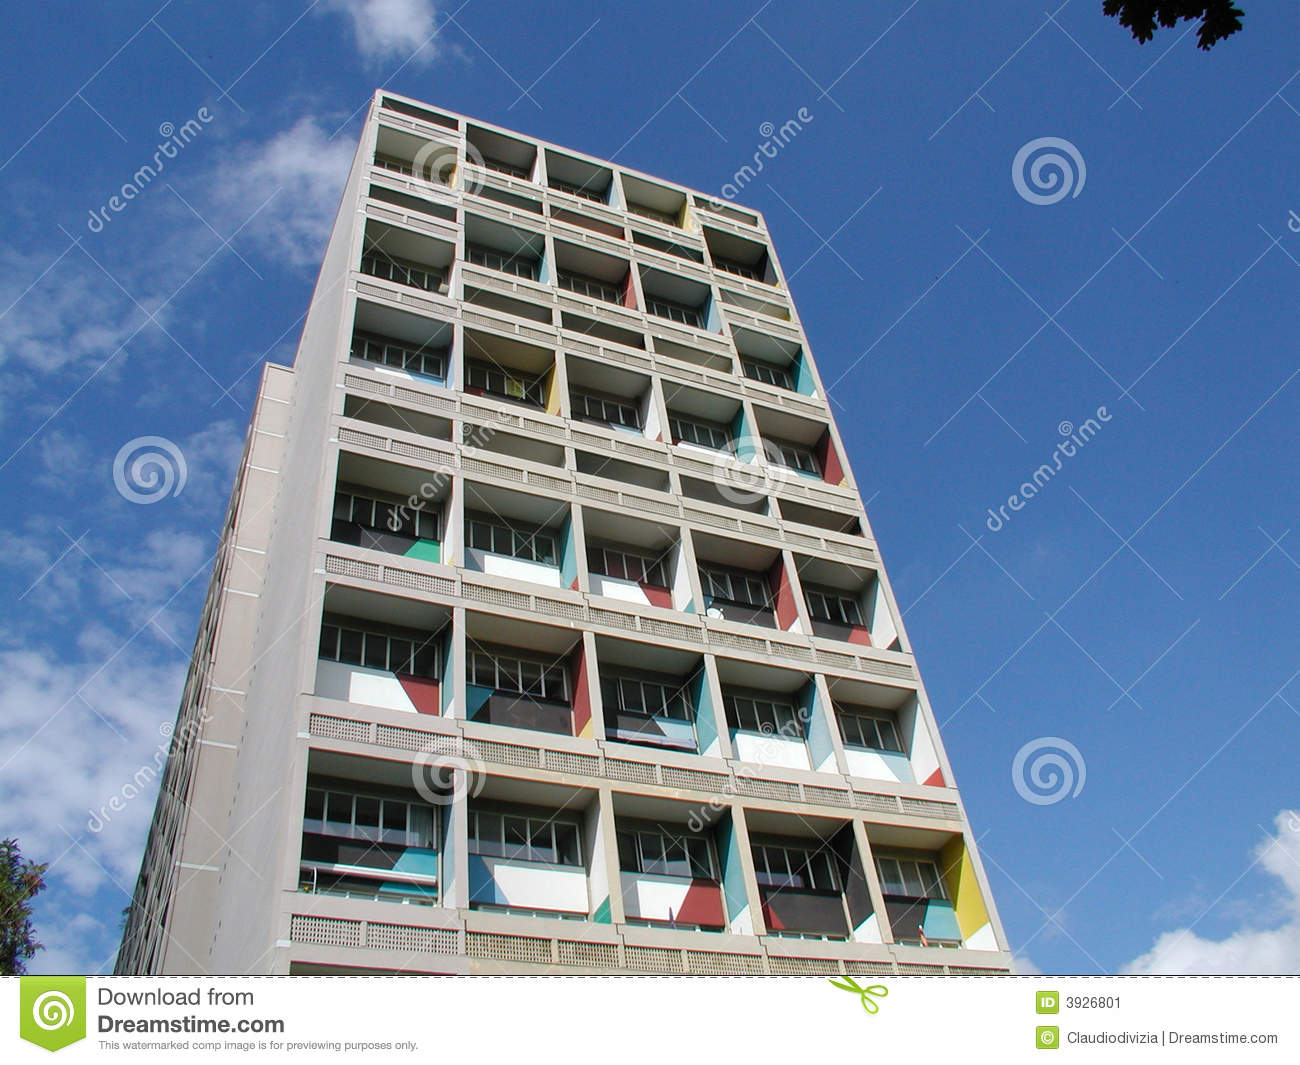 Maison le corbusier unit d 39 habitation berlin stockbild for Familienhaus berlin